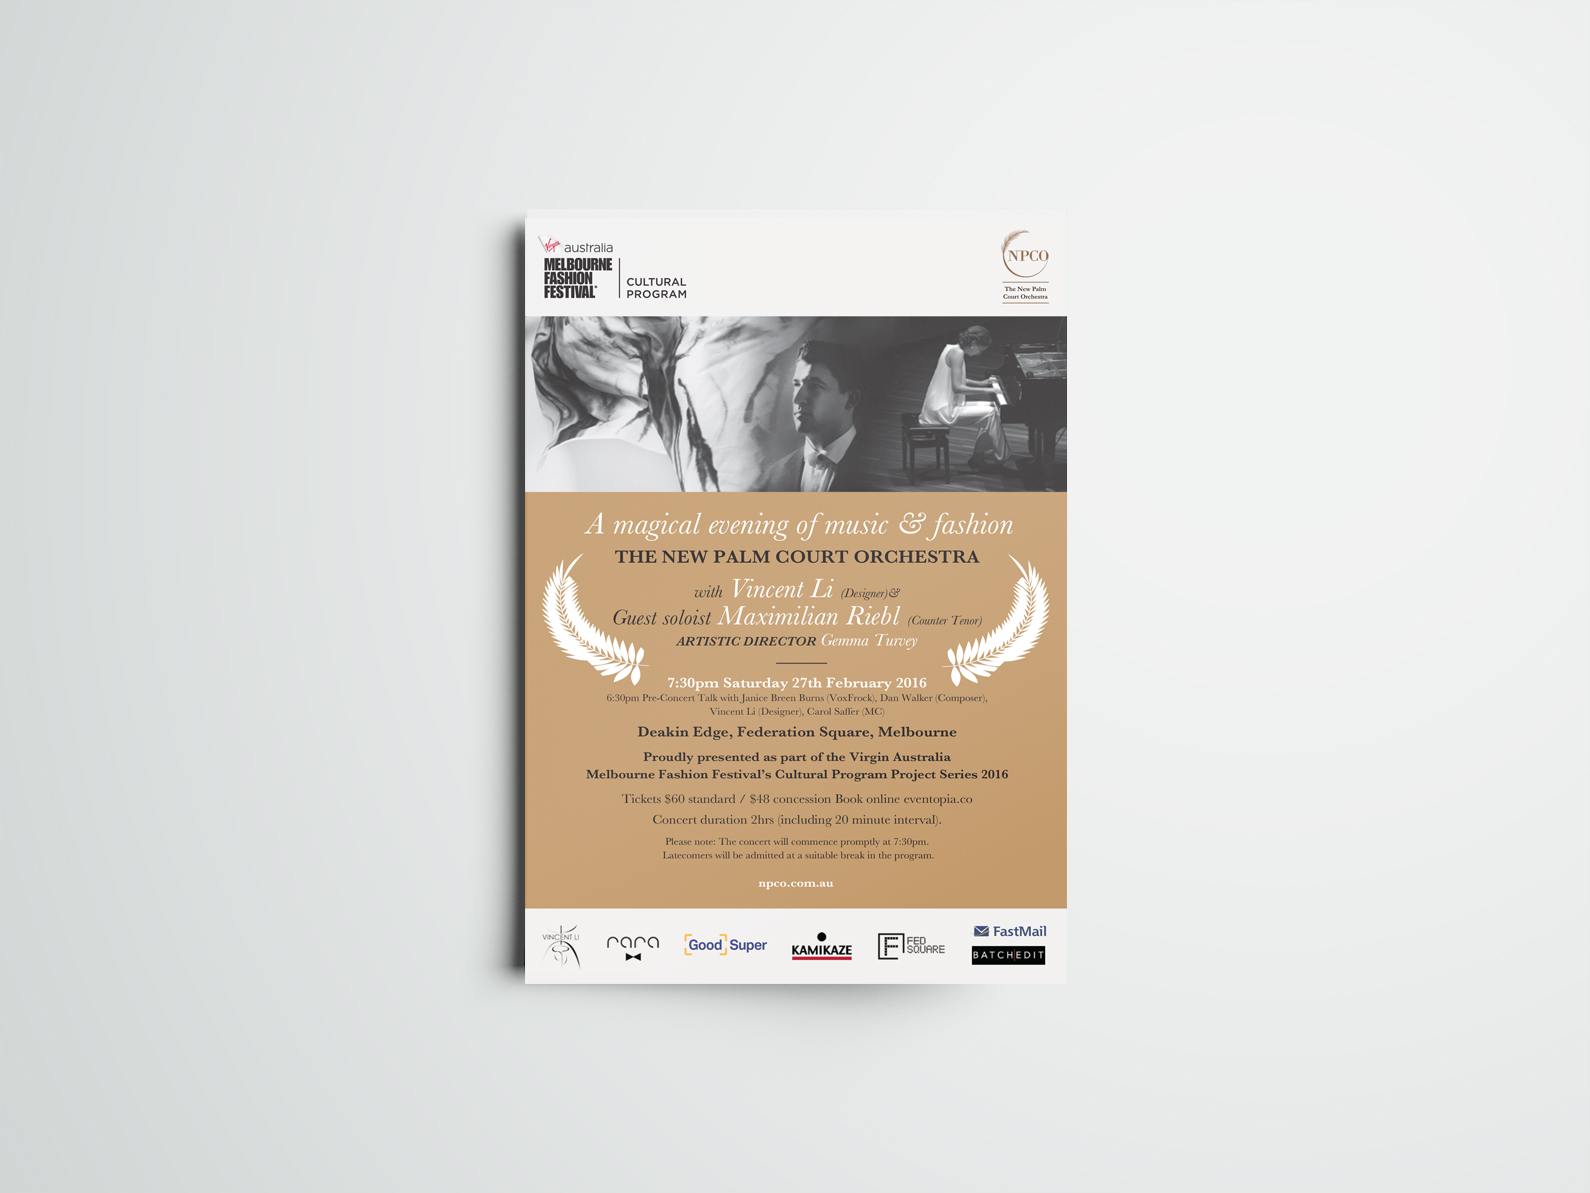 Studio-Mimi-Moon-New-Palm-Court-Orchestra-Brand-Identity-and-collateral-Flyer